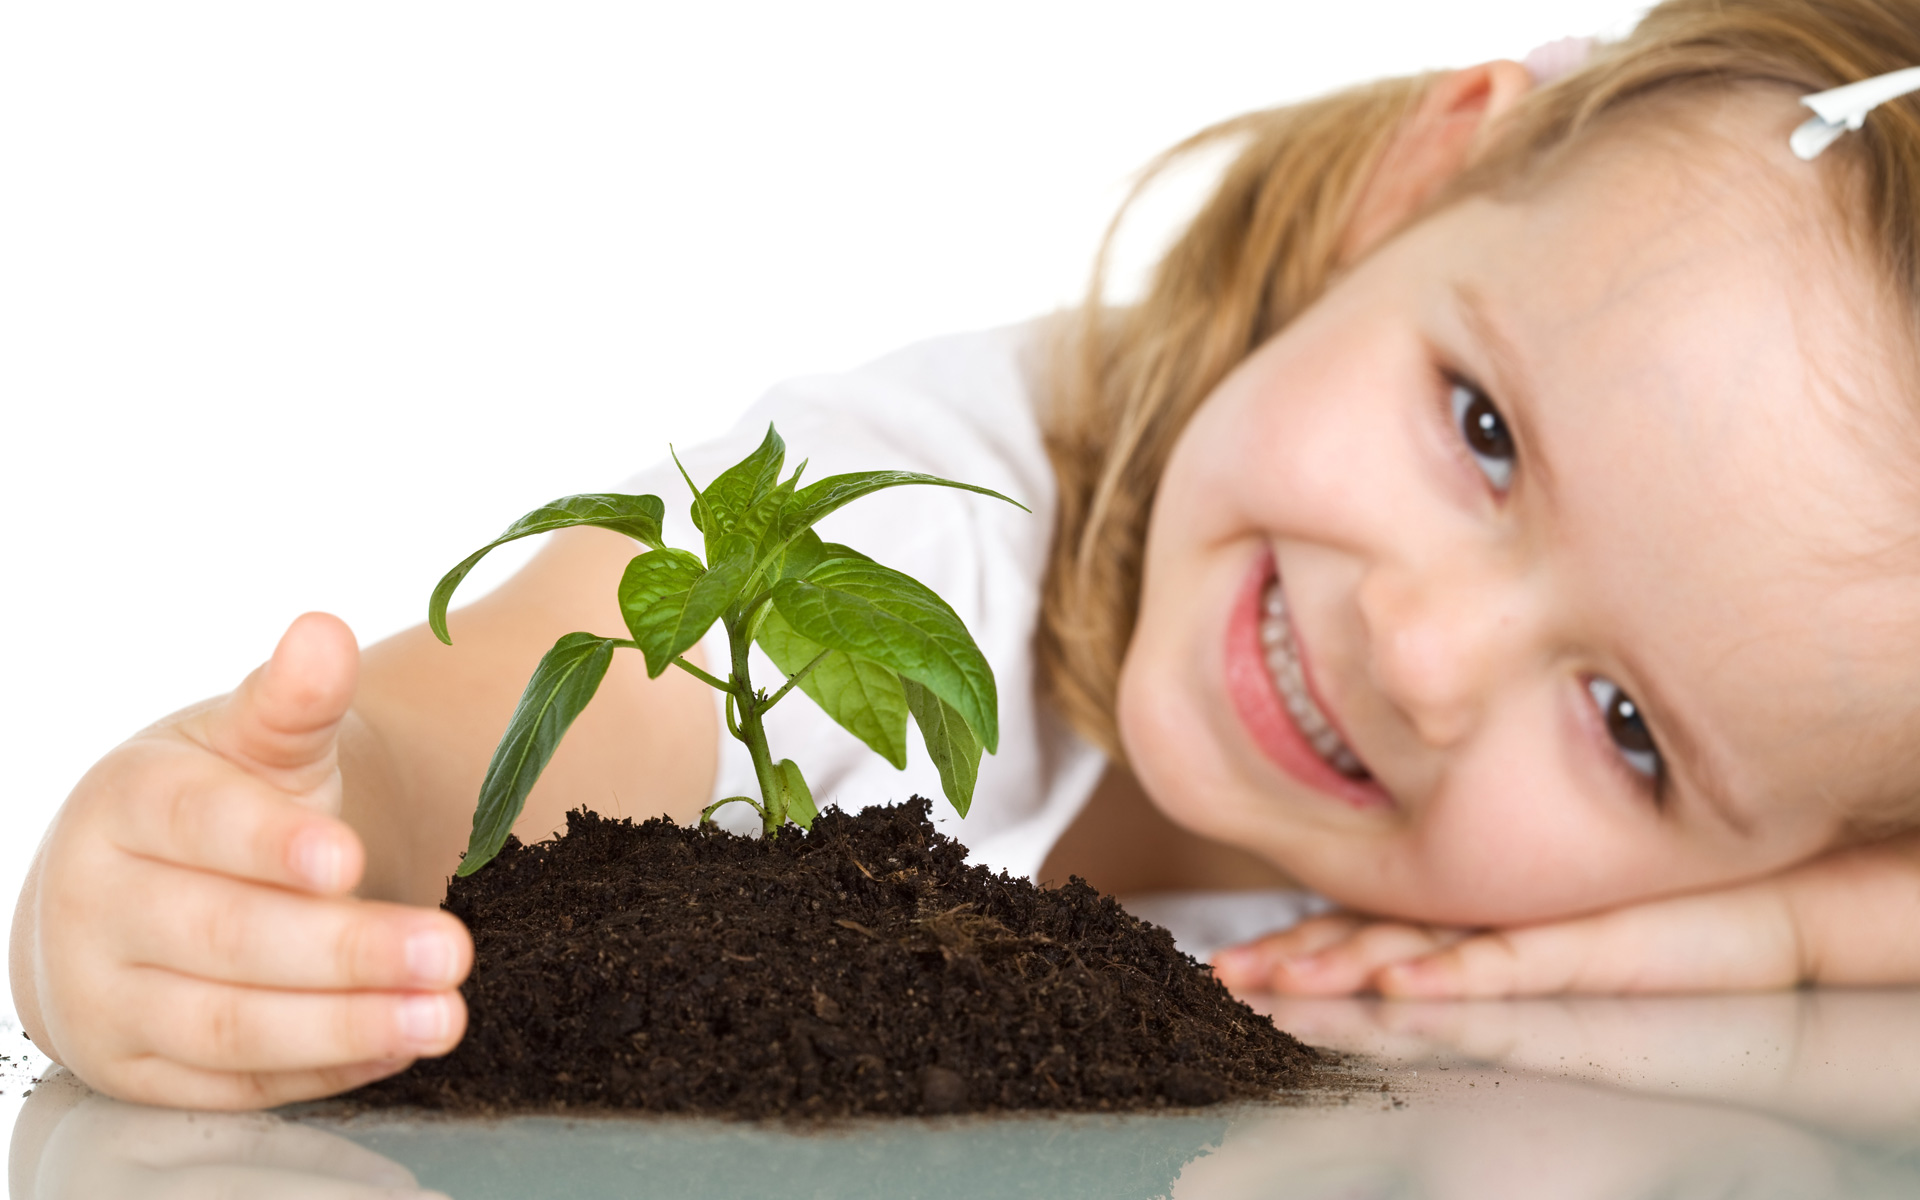 Cute Baby Girl Plant 314.95 Kb